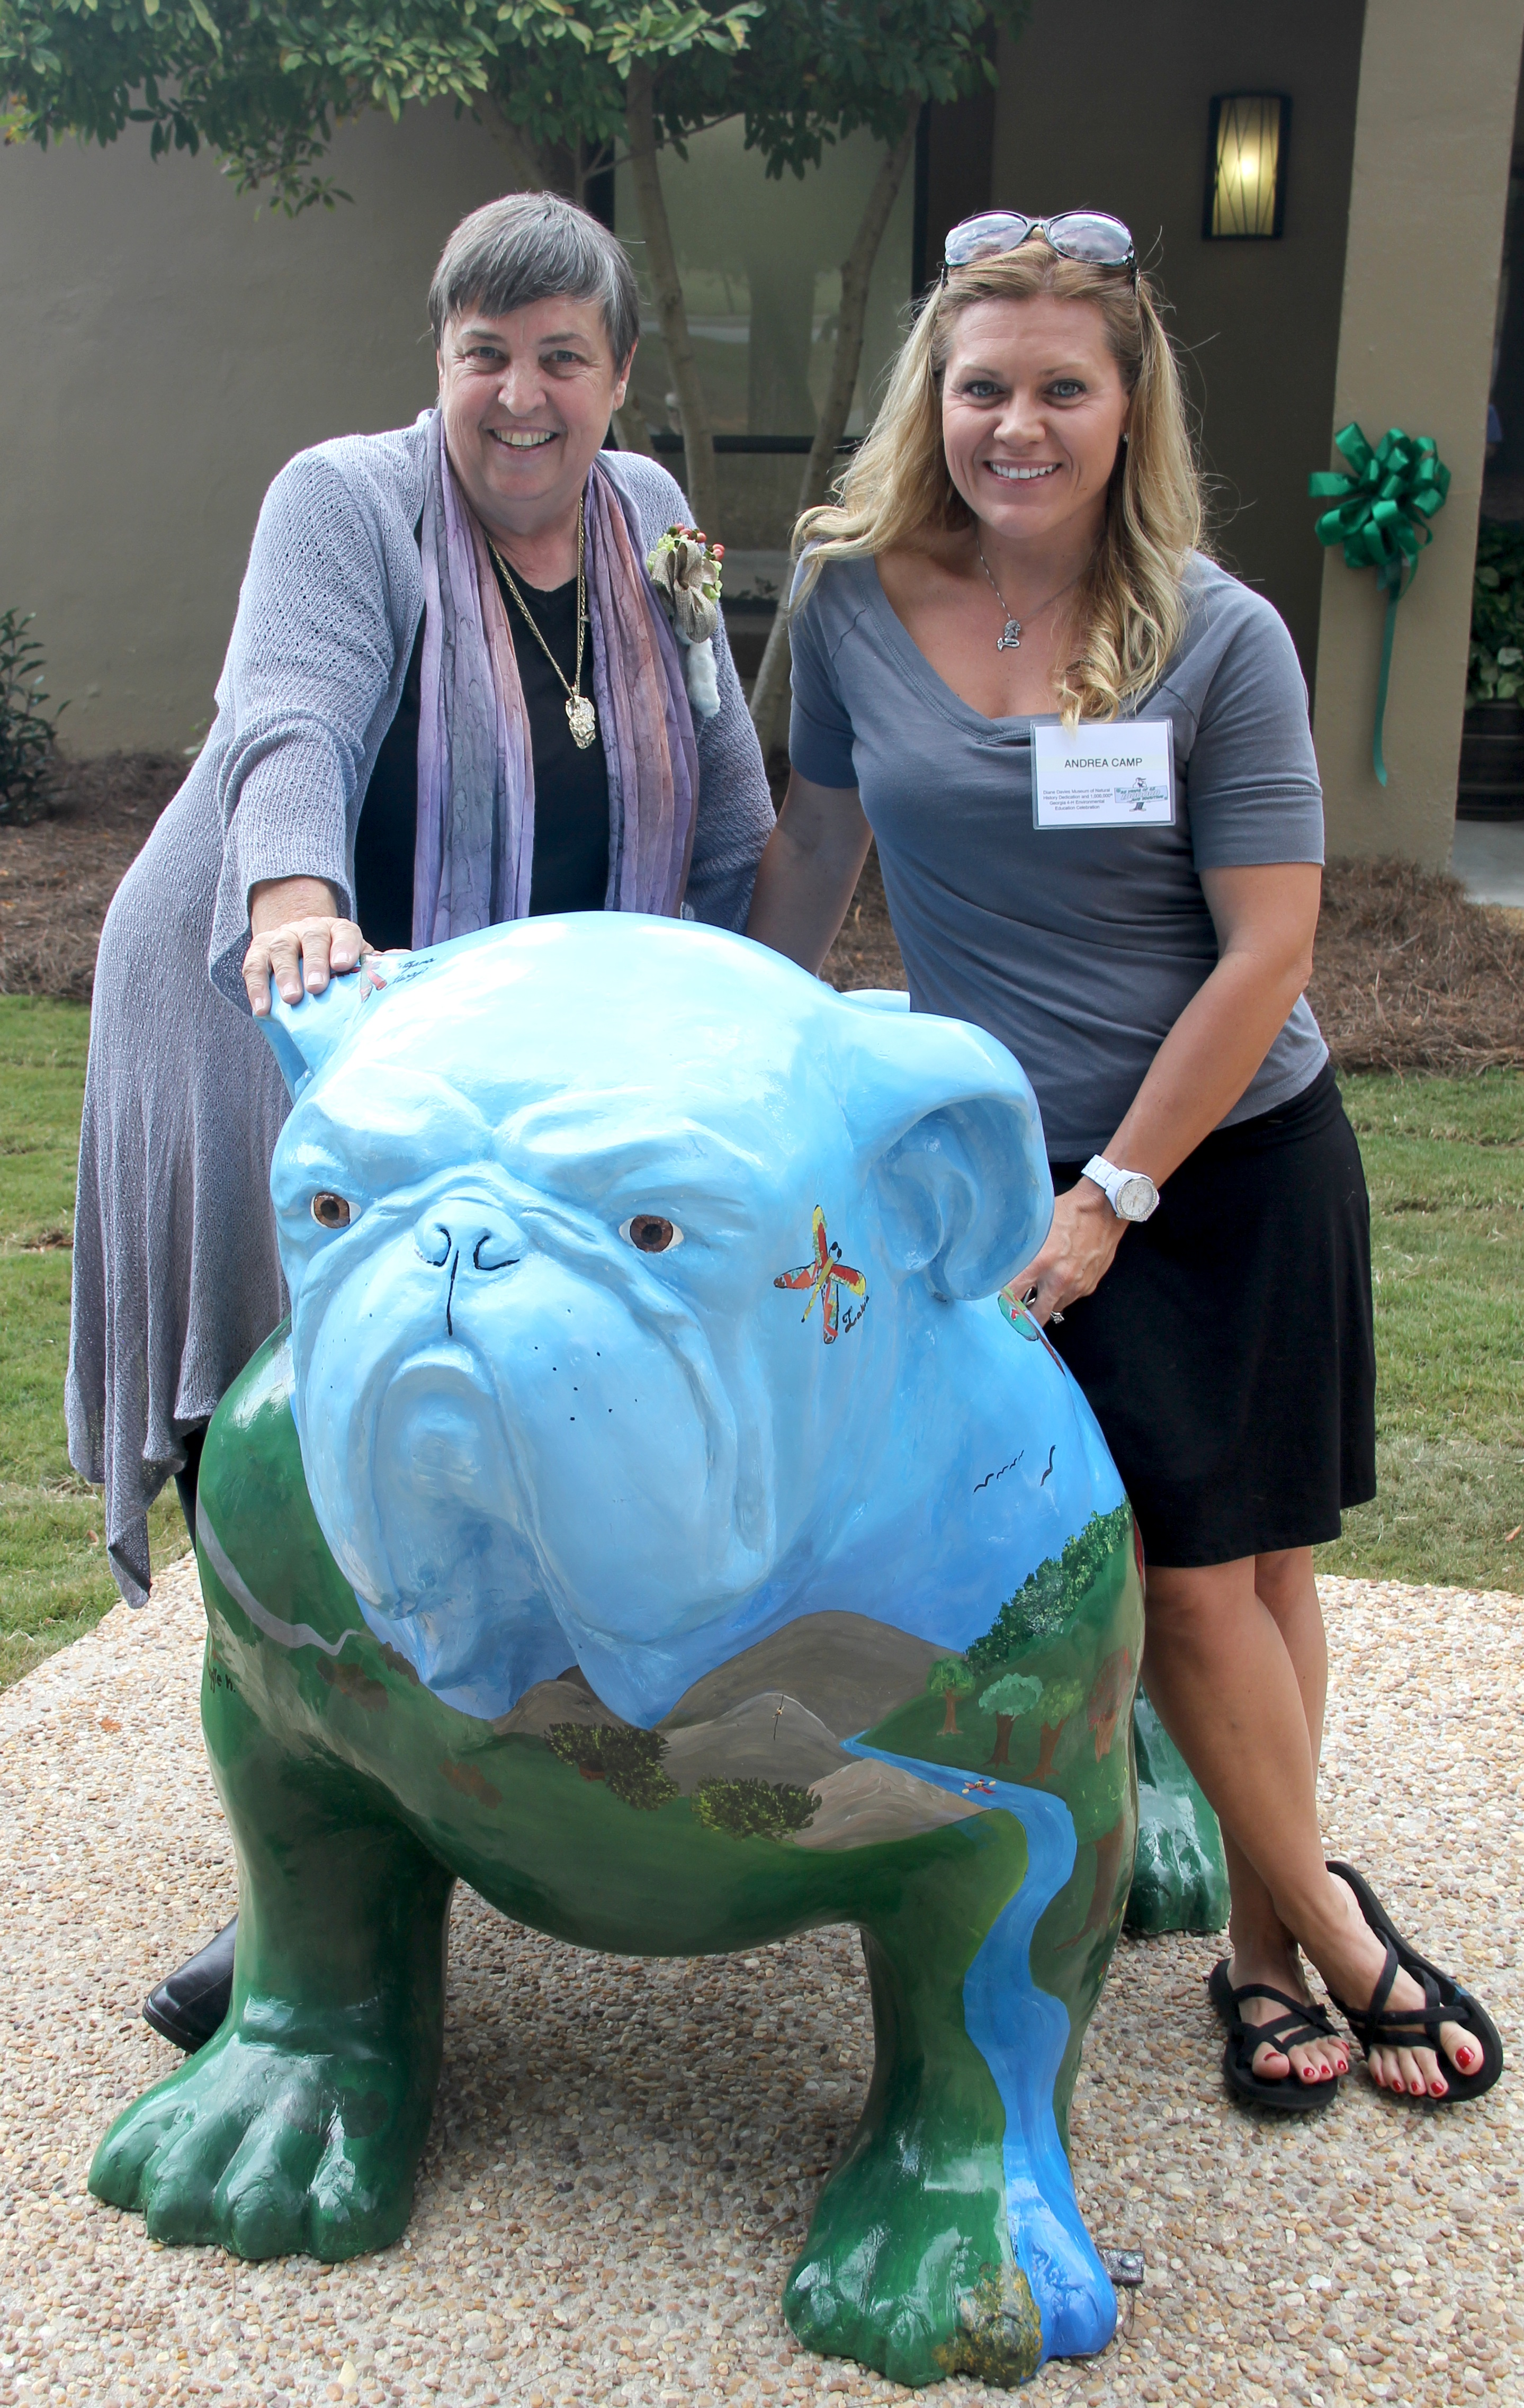 Diane Davies and Andrea Camp pose with the new University of Georgia Dawg, Tera, in front of the Diane Davies Natural History Museum at Rock Eagle 4-H Center in Eatonton, Ga. Davies founded the Georgia 4-H Environmental Education Program which began at Rock Eagle. Camp, a former environmental education instructor at Rock Eagle, painted Tera's artwork.